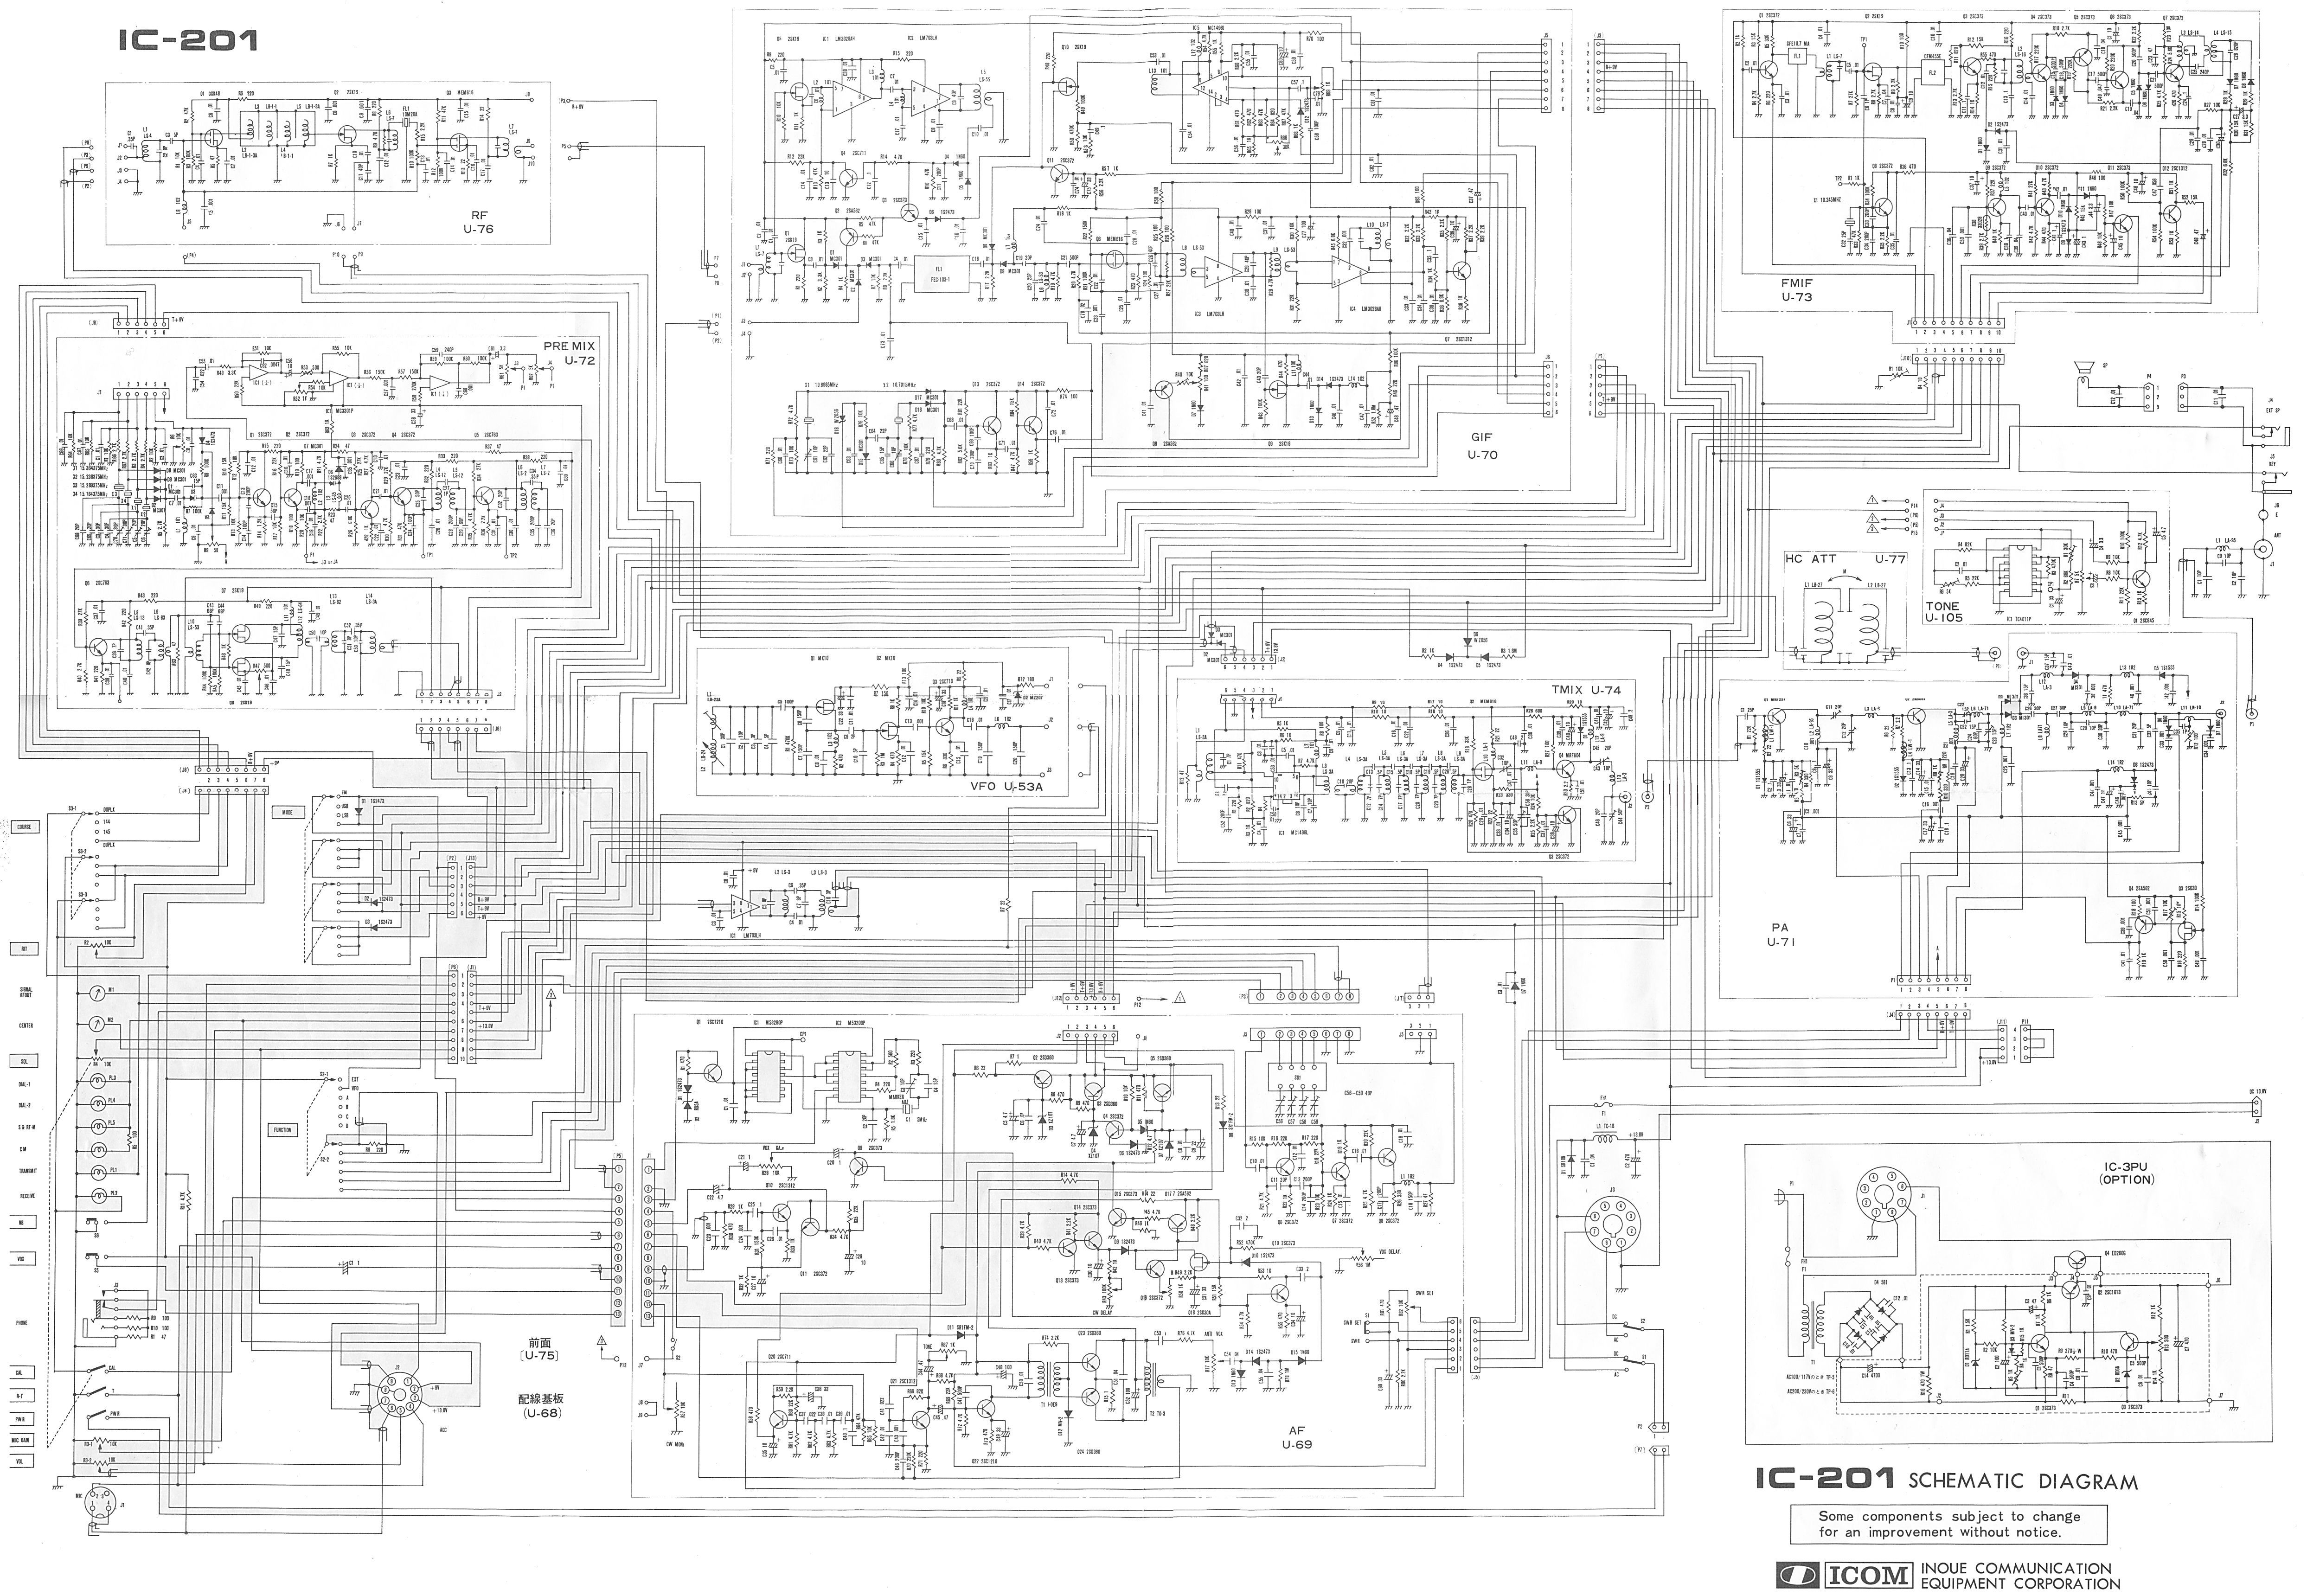 Fixing And Restoring An Old Radio Grundig 96 moreover Grundig Tube Radio 4040w Model From 1953 Top 180677210352 as well Schematic in addition Philco Tv Schematics together with 25w Hifi Audio  lifier With Mosfet. on grundig tube radio schematic